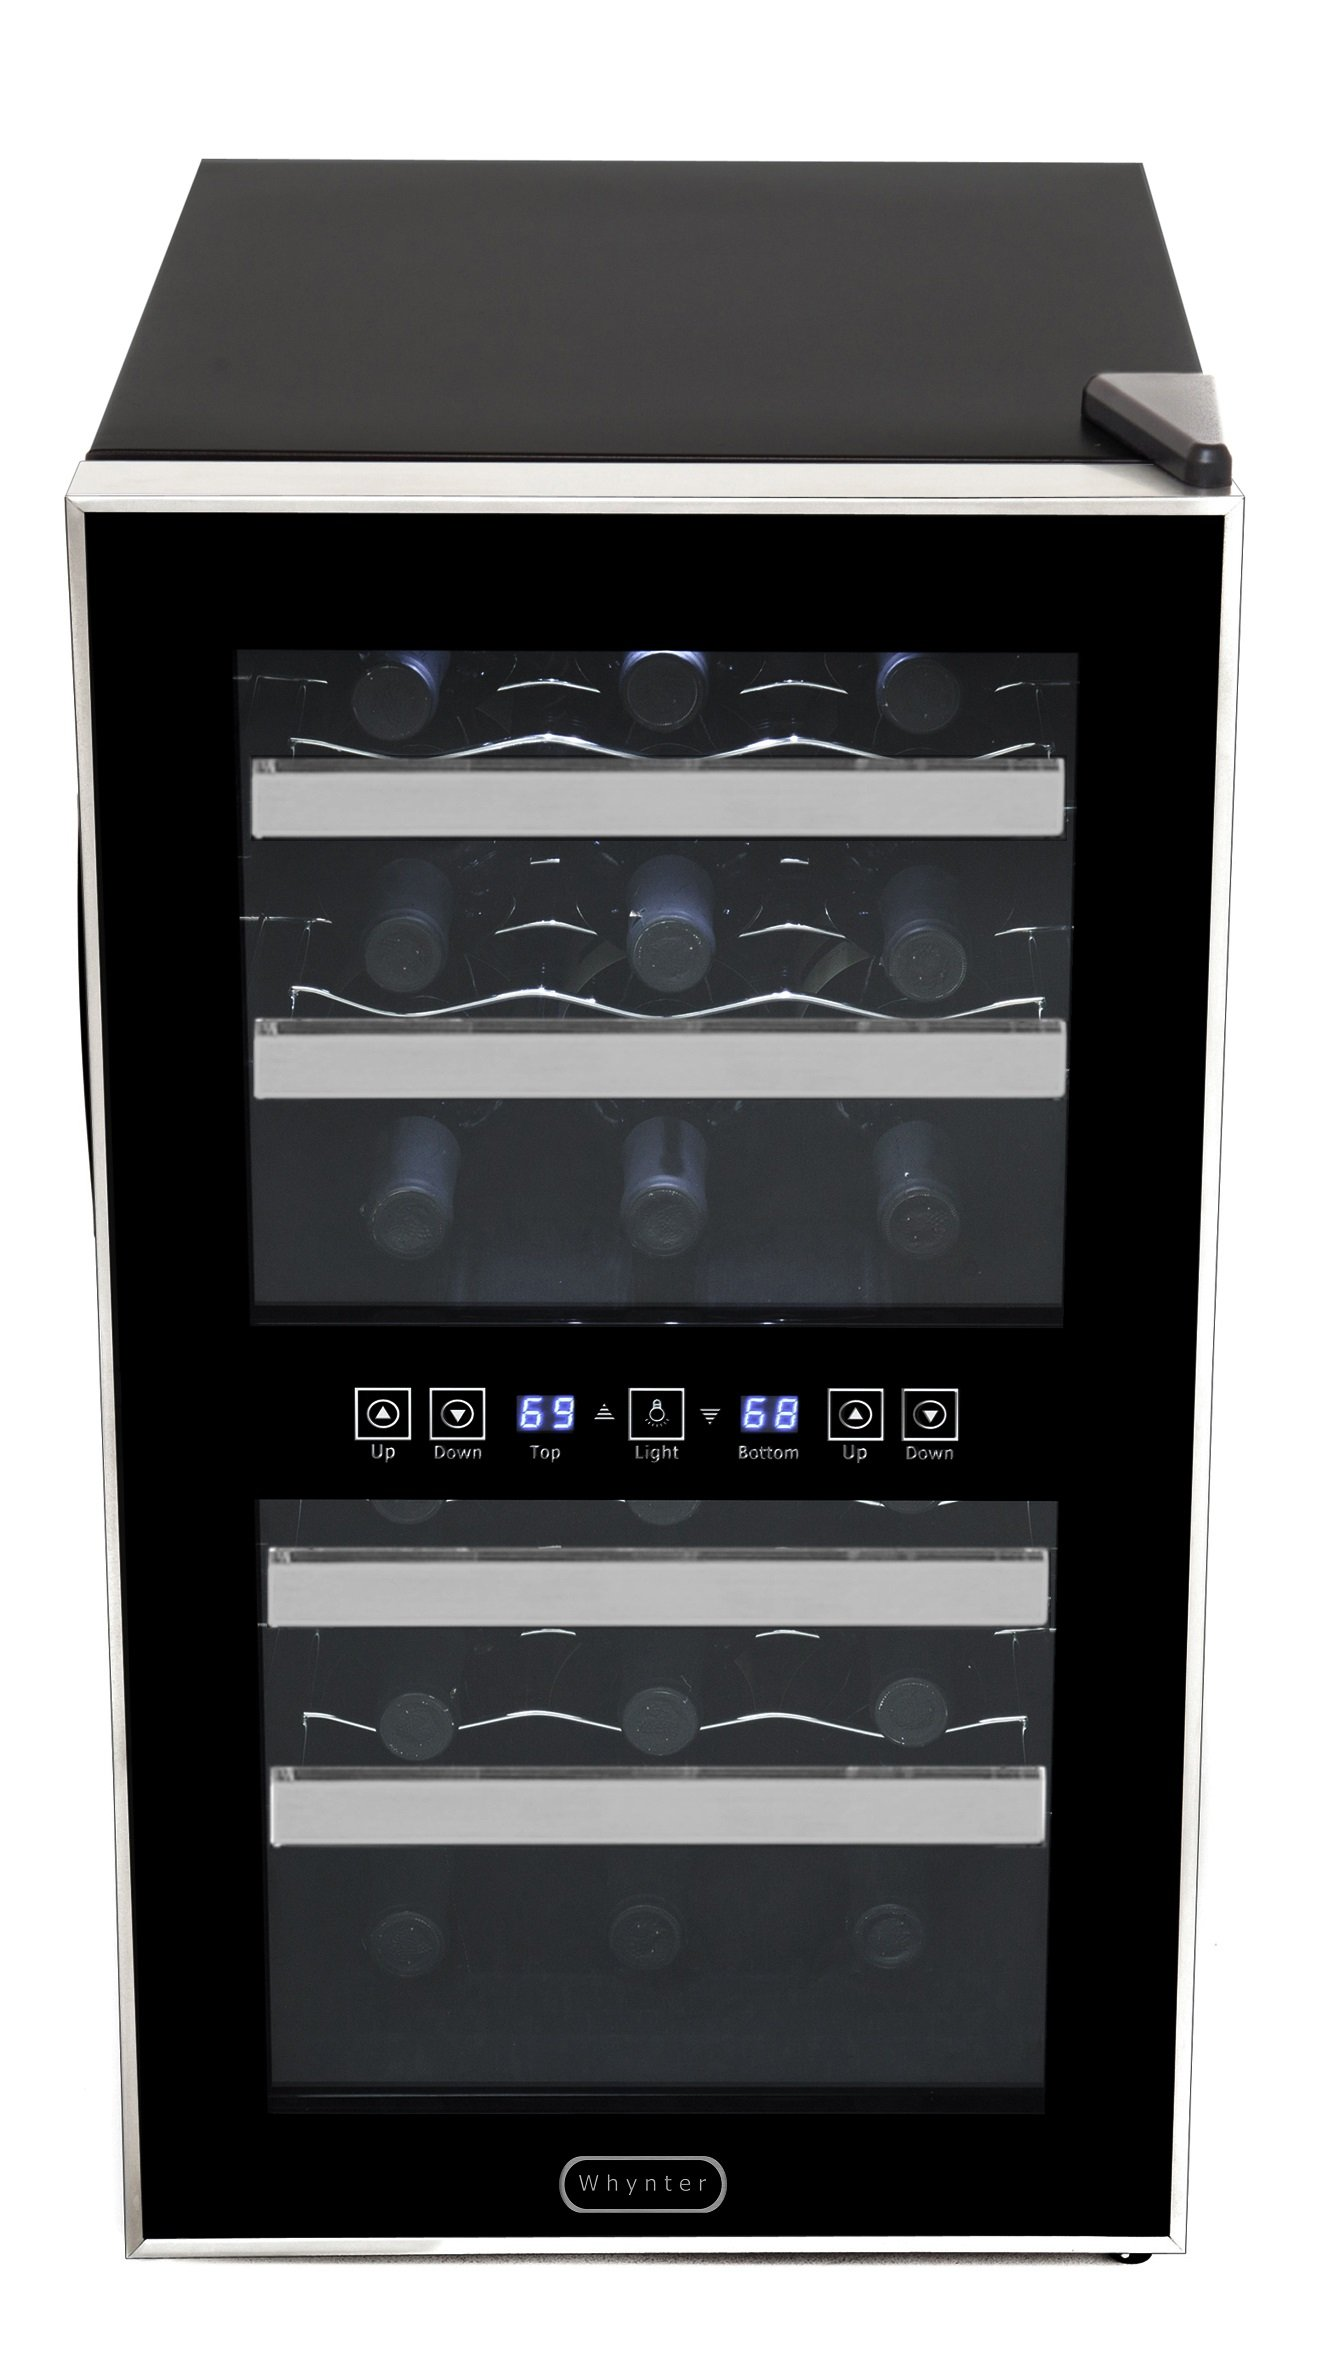 Whynter WC-181DS 18 Bottle Dual Zone Touch Control Wine Cooler, Black with Stainless Steel Trim